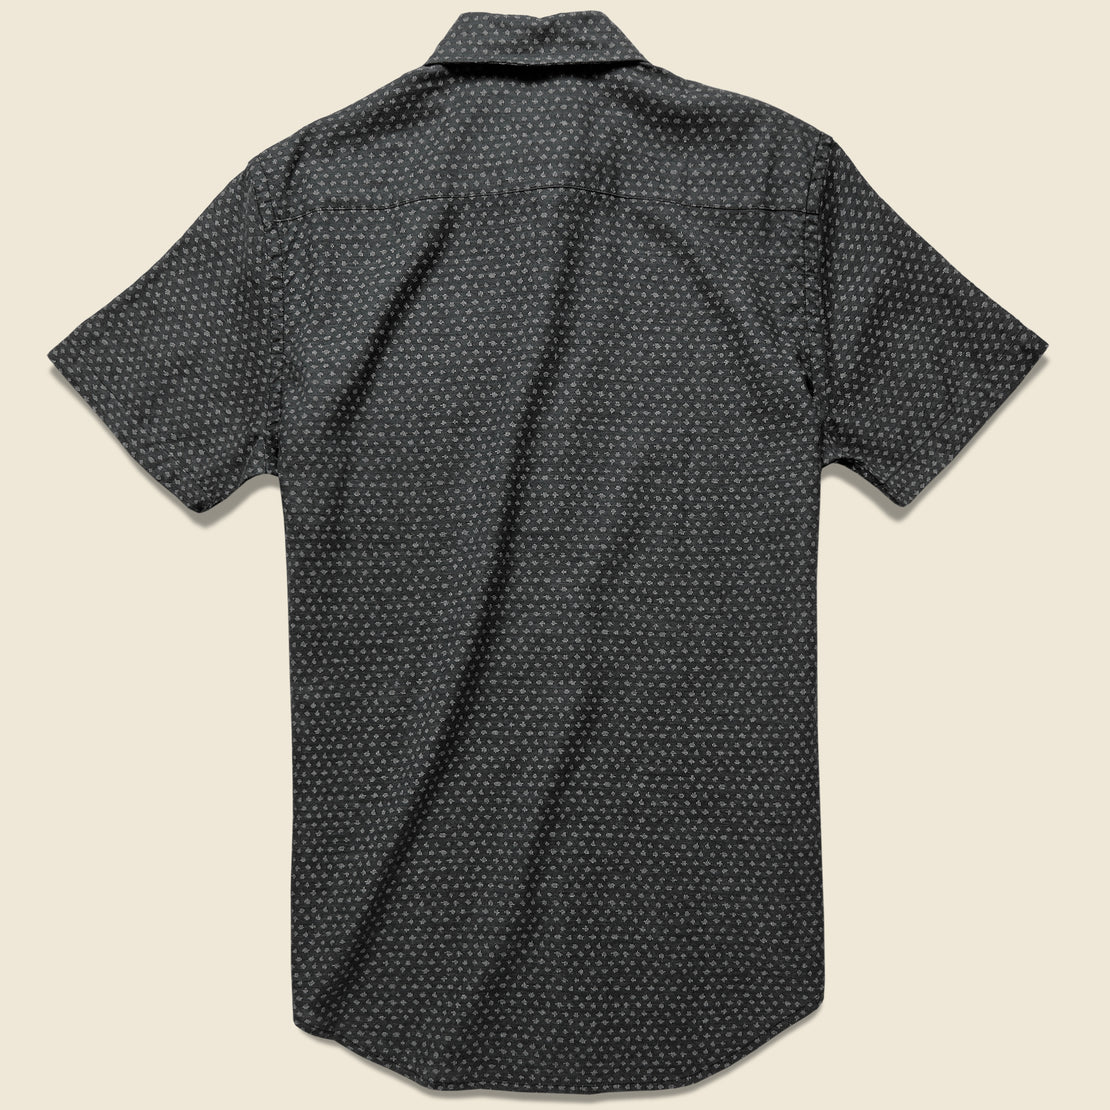 Pacific Shirt - Black Fleck